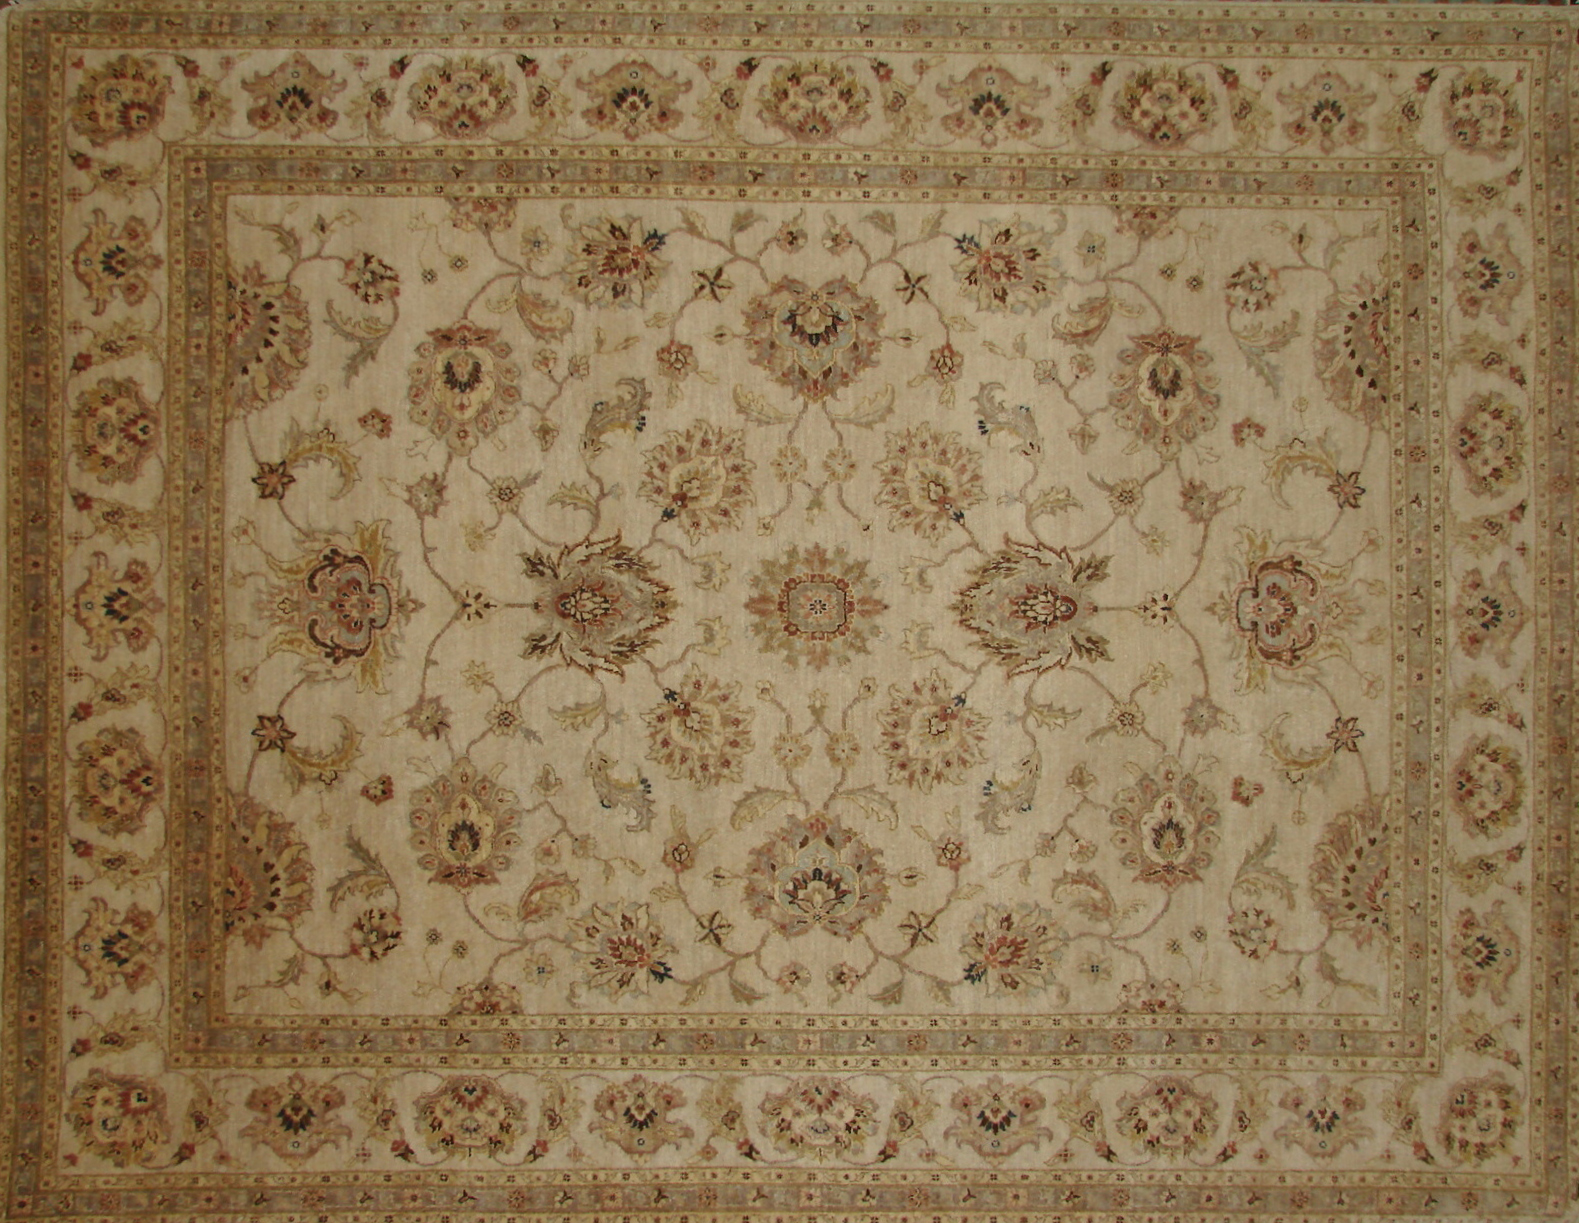 8x10 Traditional Hand Knotted Wool Area Rug - MR16549